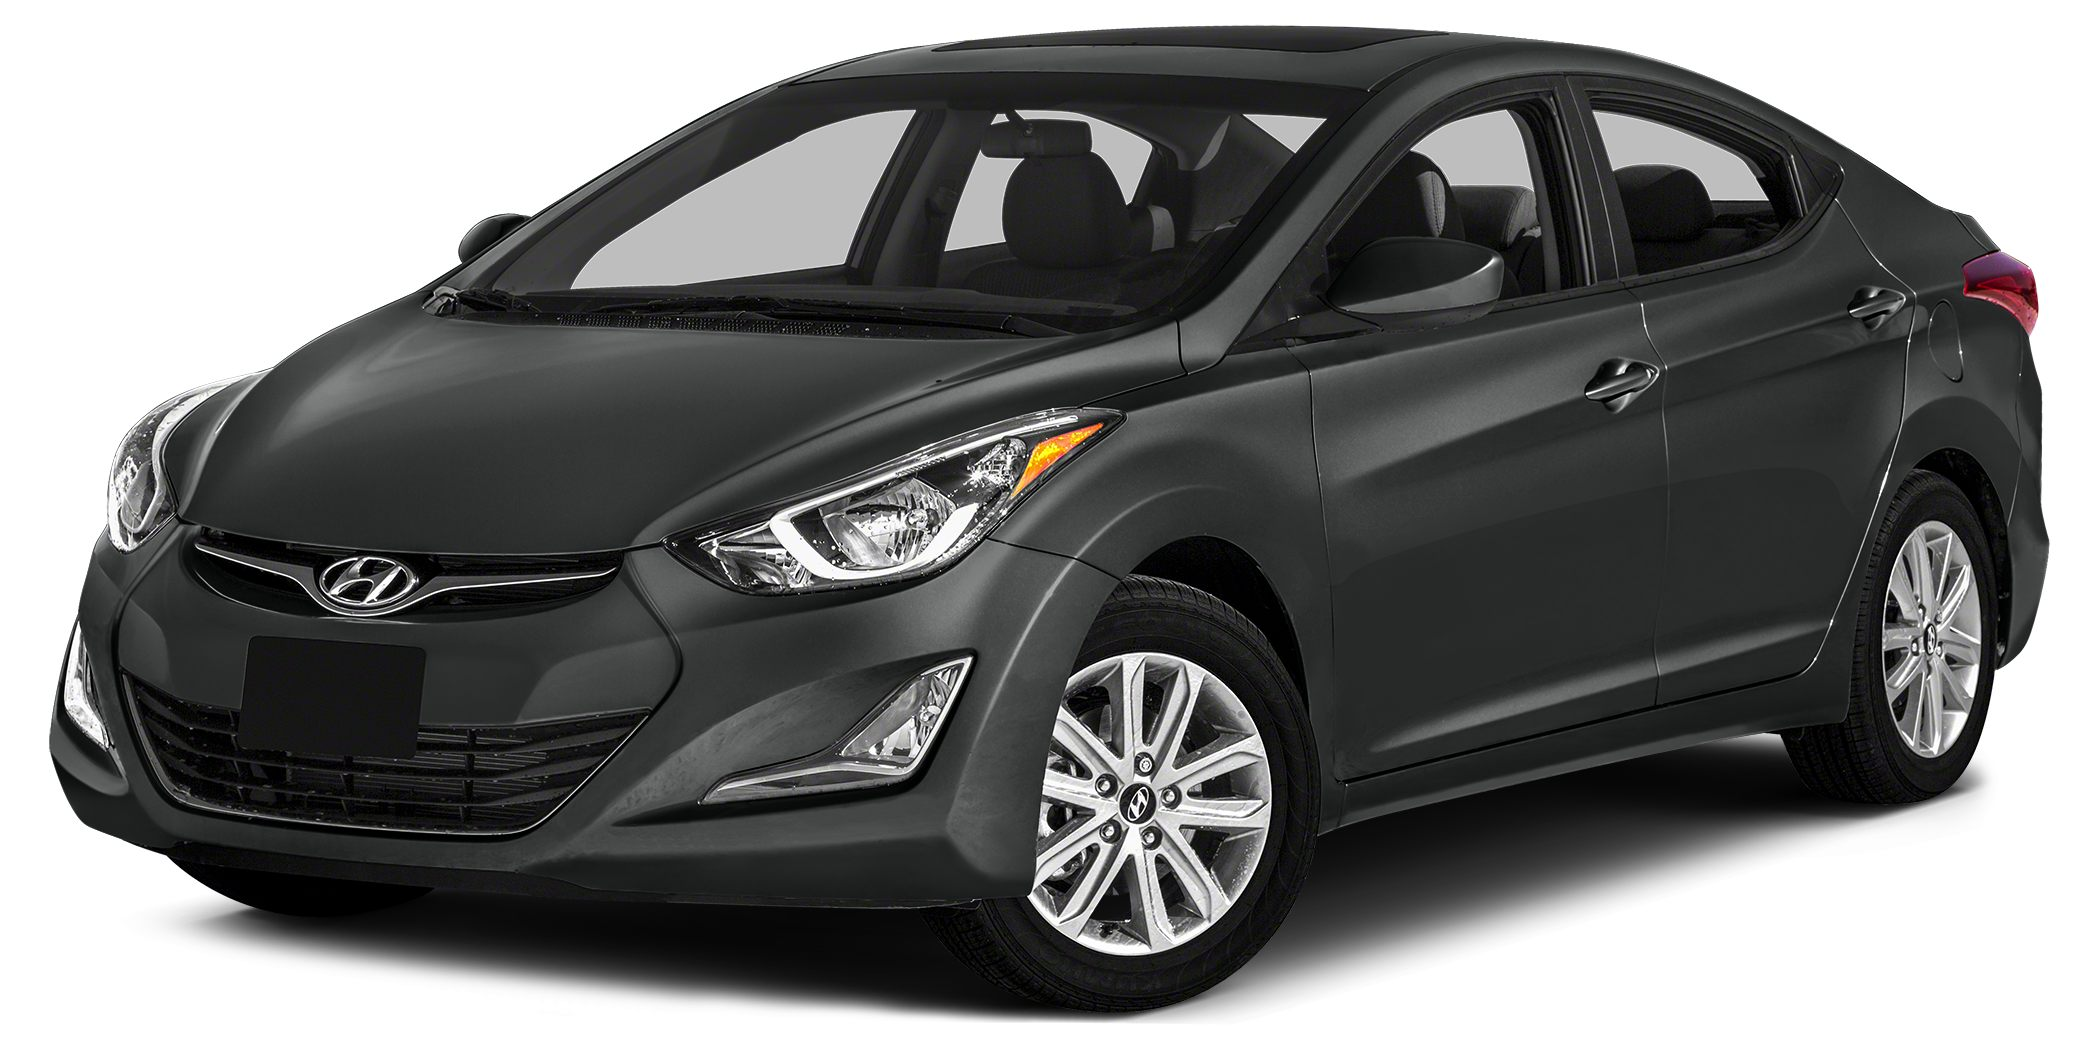 2014 Hyundai Elantra SE SE Harbor Gray on Premium Gray interior Well equipped 1-owner clean C